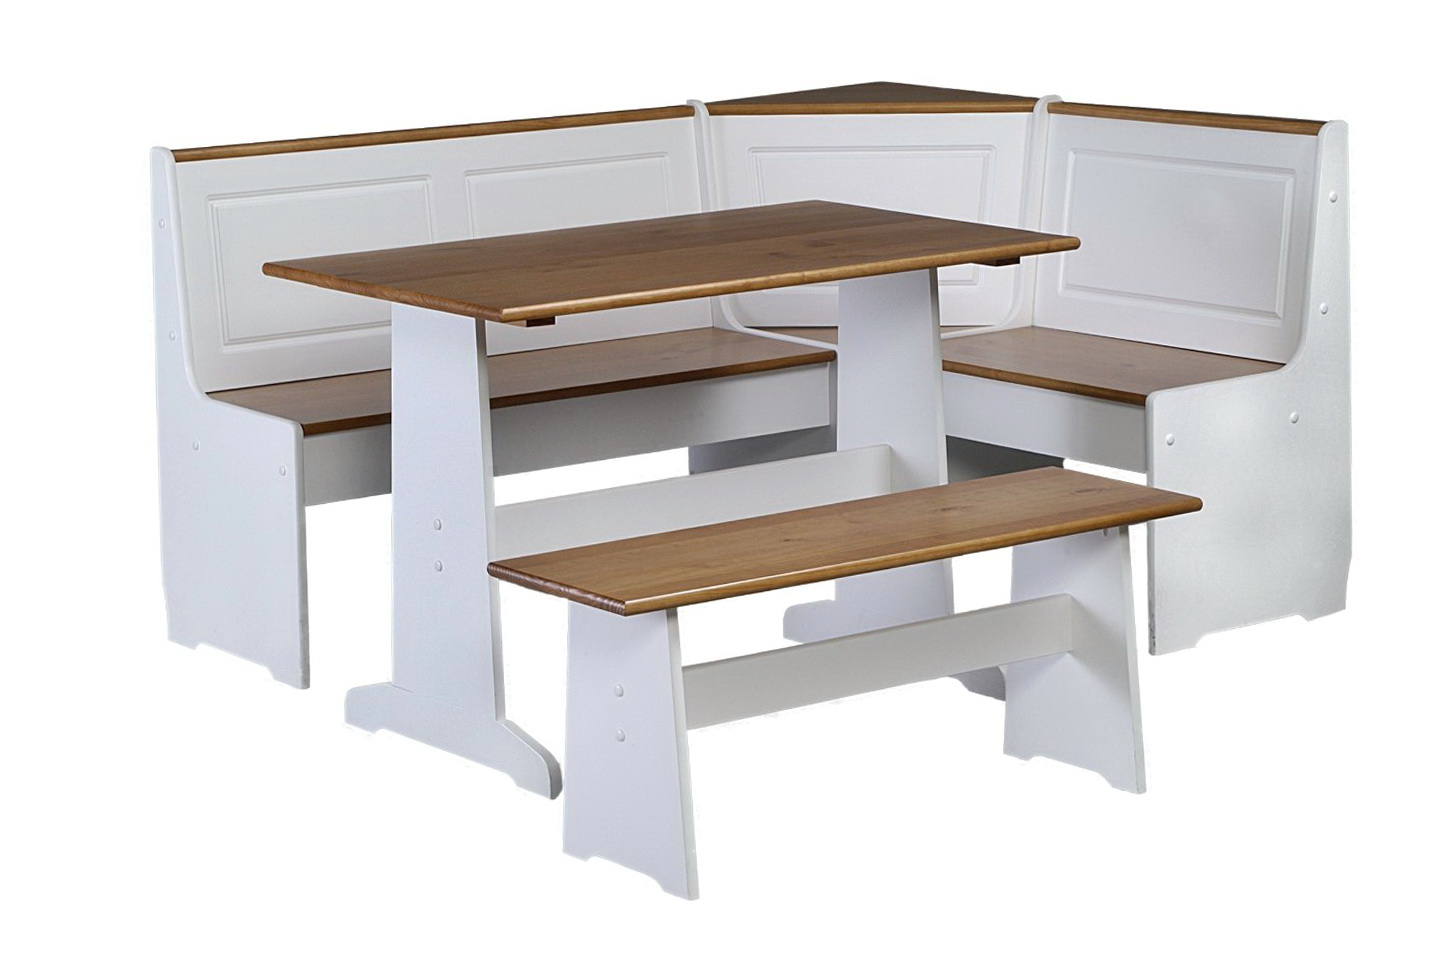 Kitchen tables with benches for small spaces home design for Small kitchen tables for two